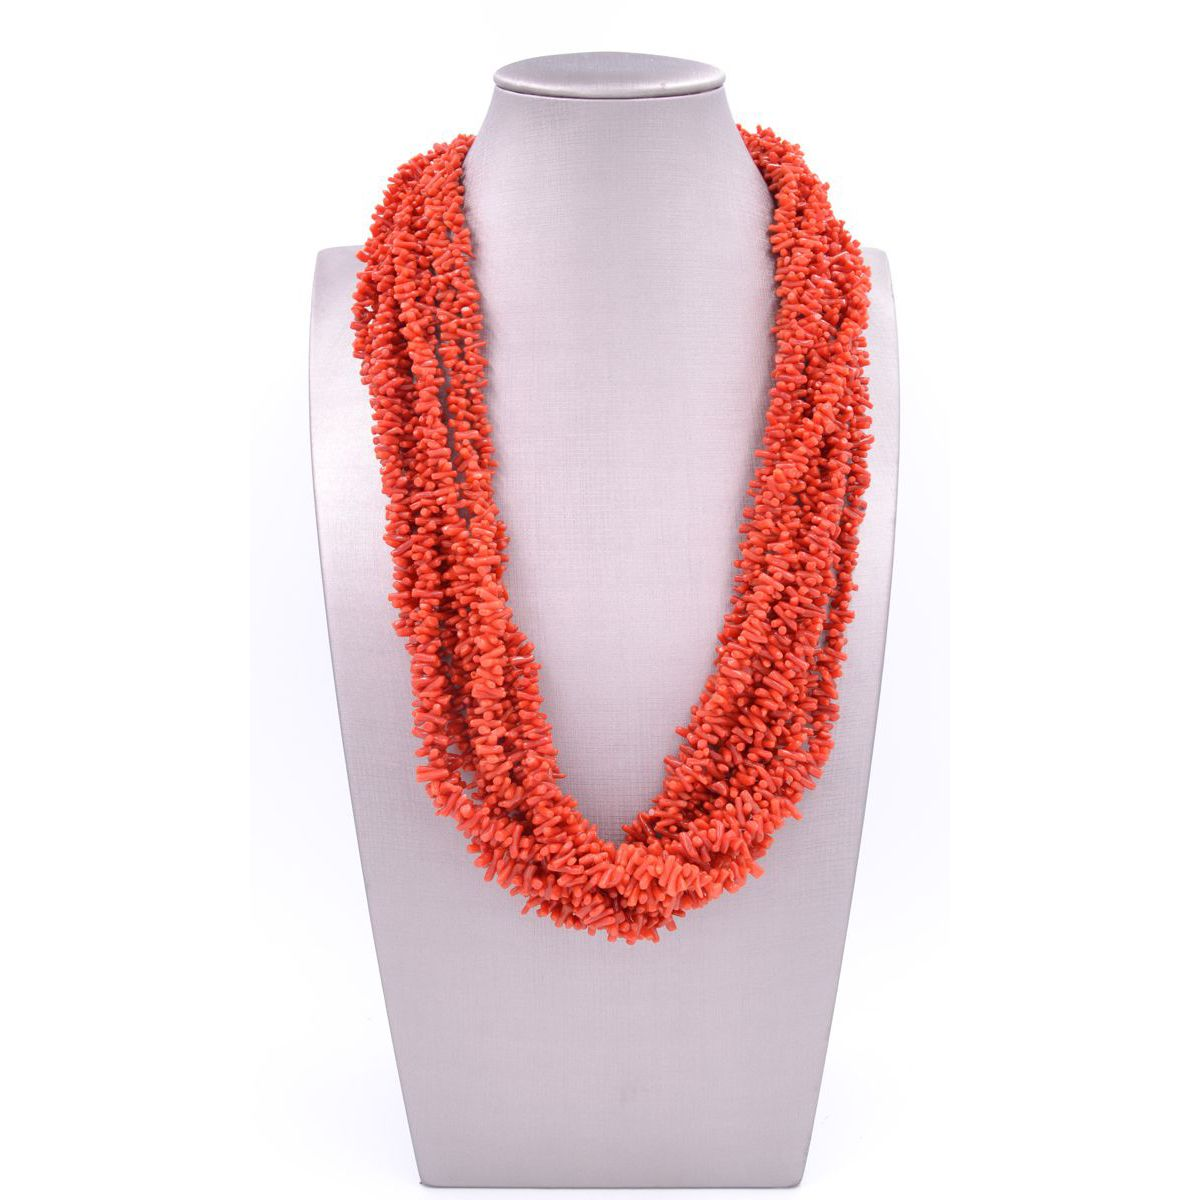 NECKLACE 9 STRANDS CORAL Red BRASS Gioielli